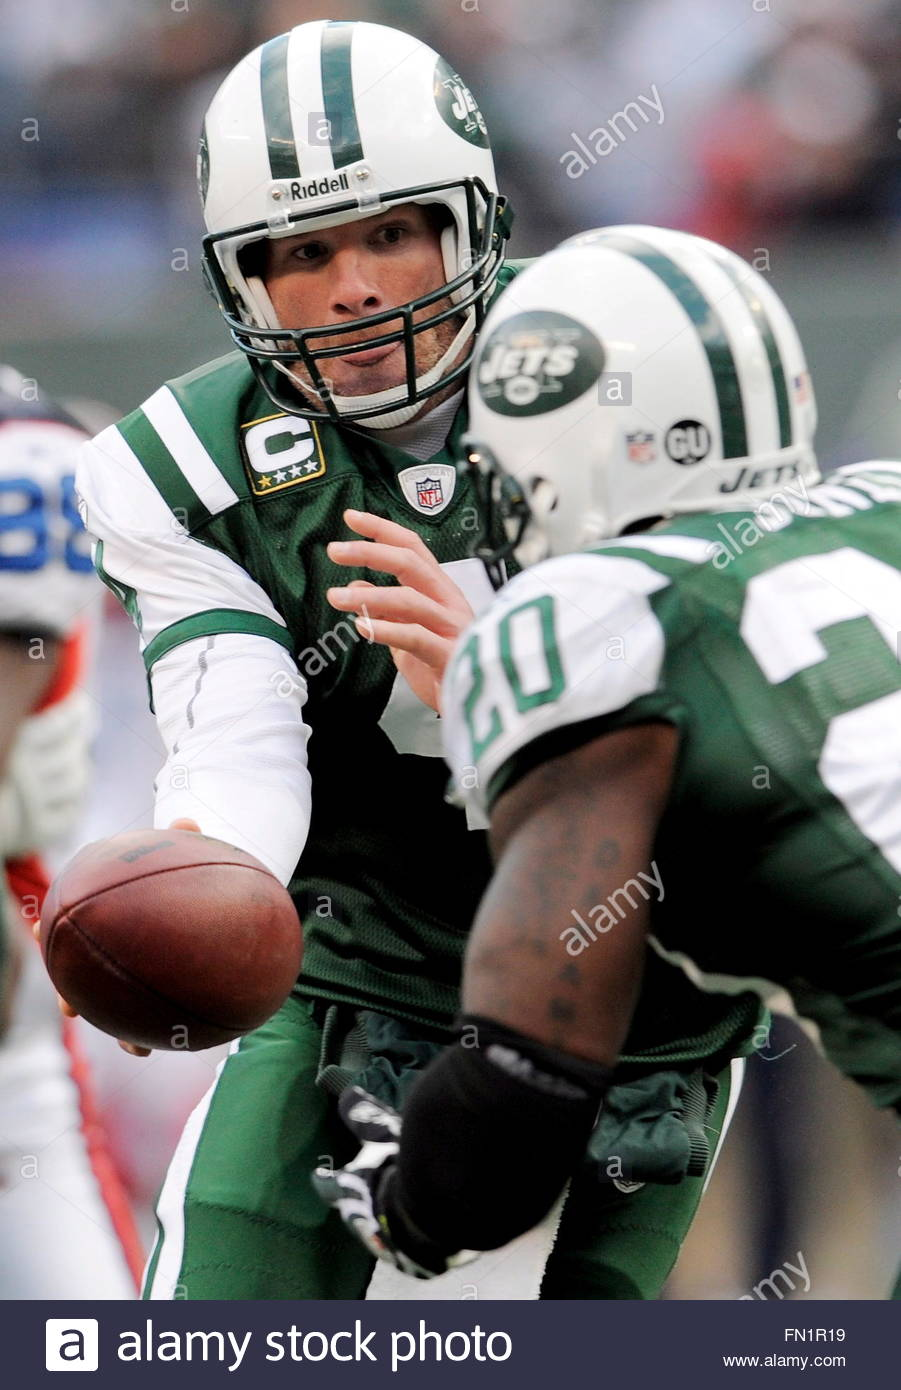 Jerseys NFL Cheap - The Jets' Brett Favre (l) Hands Off To Thomas Jones (r) During The ...